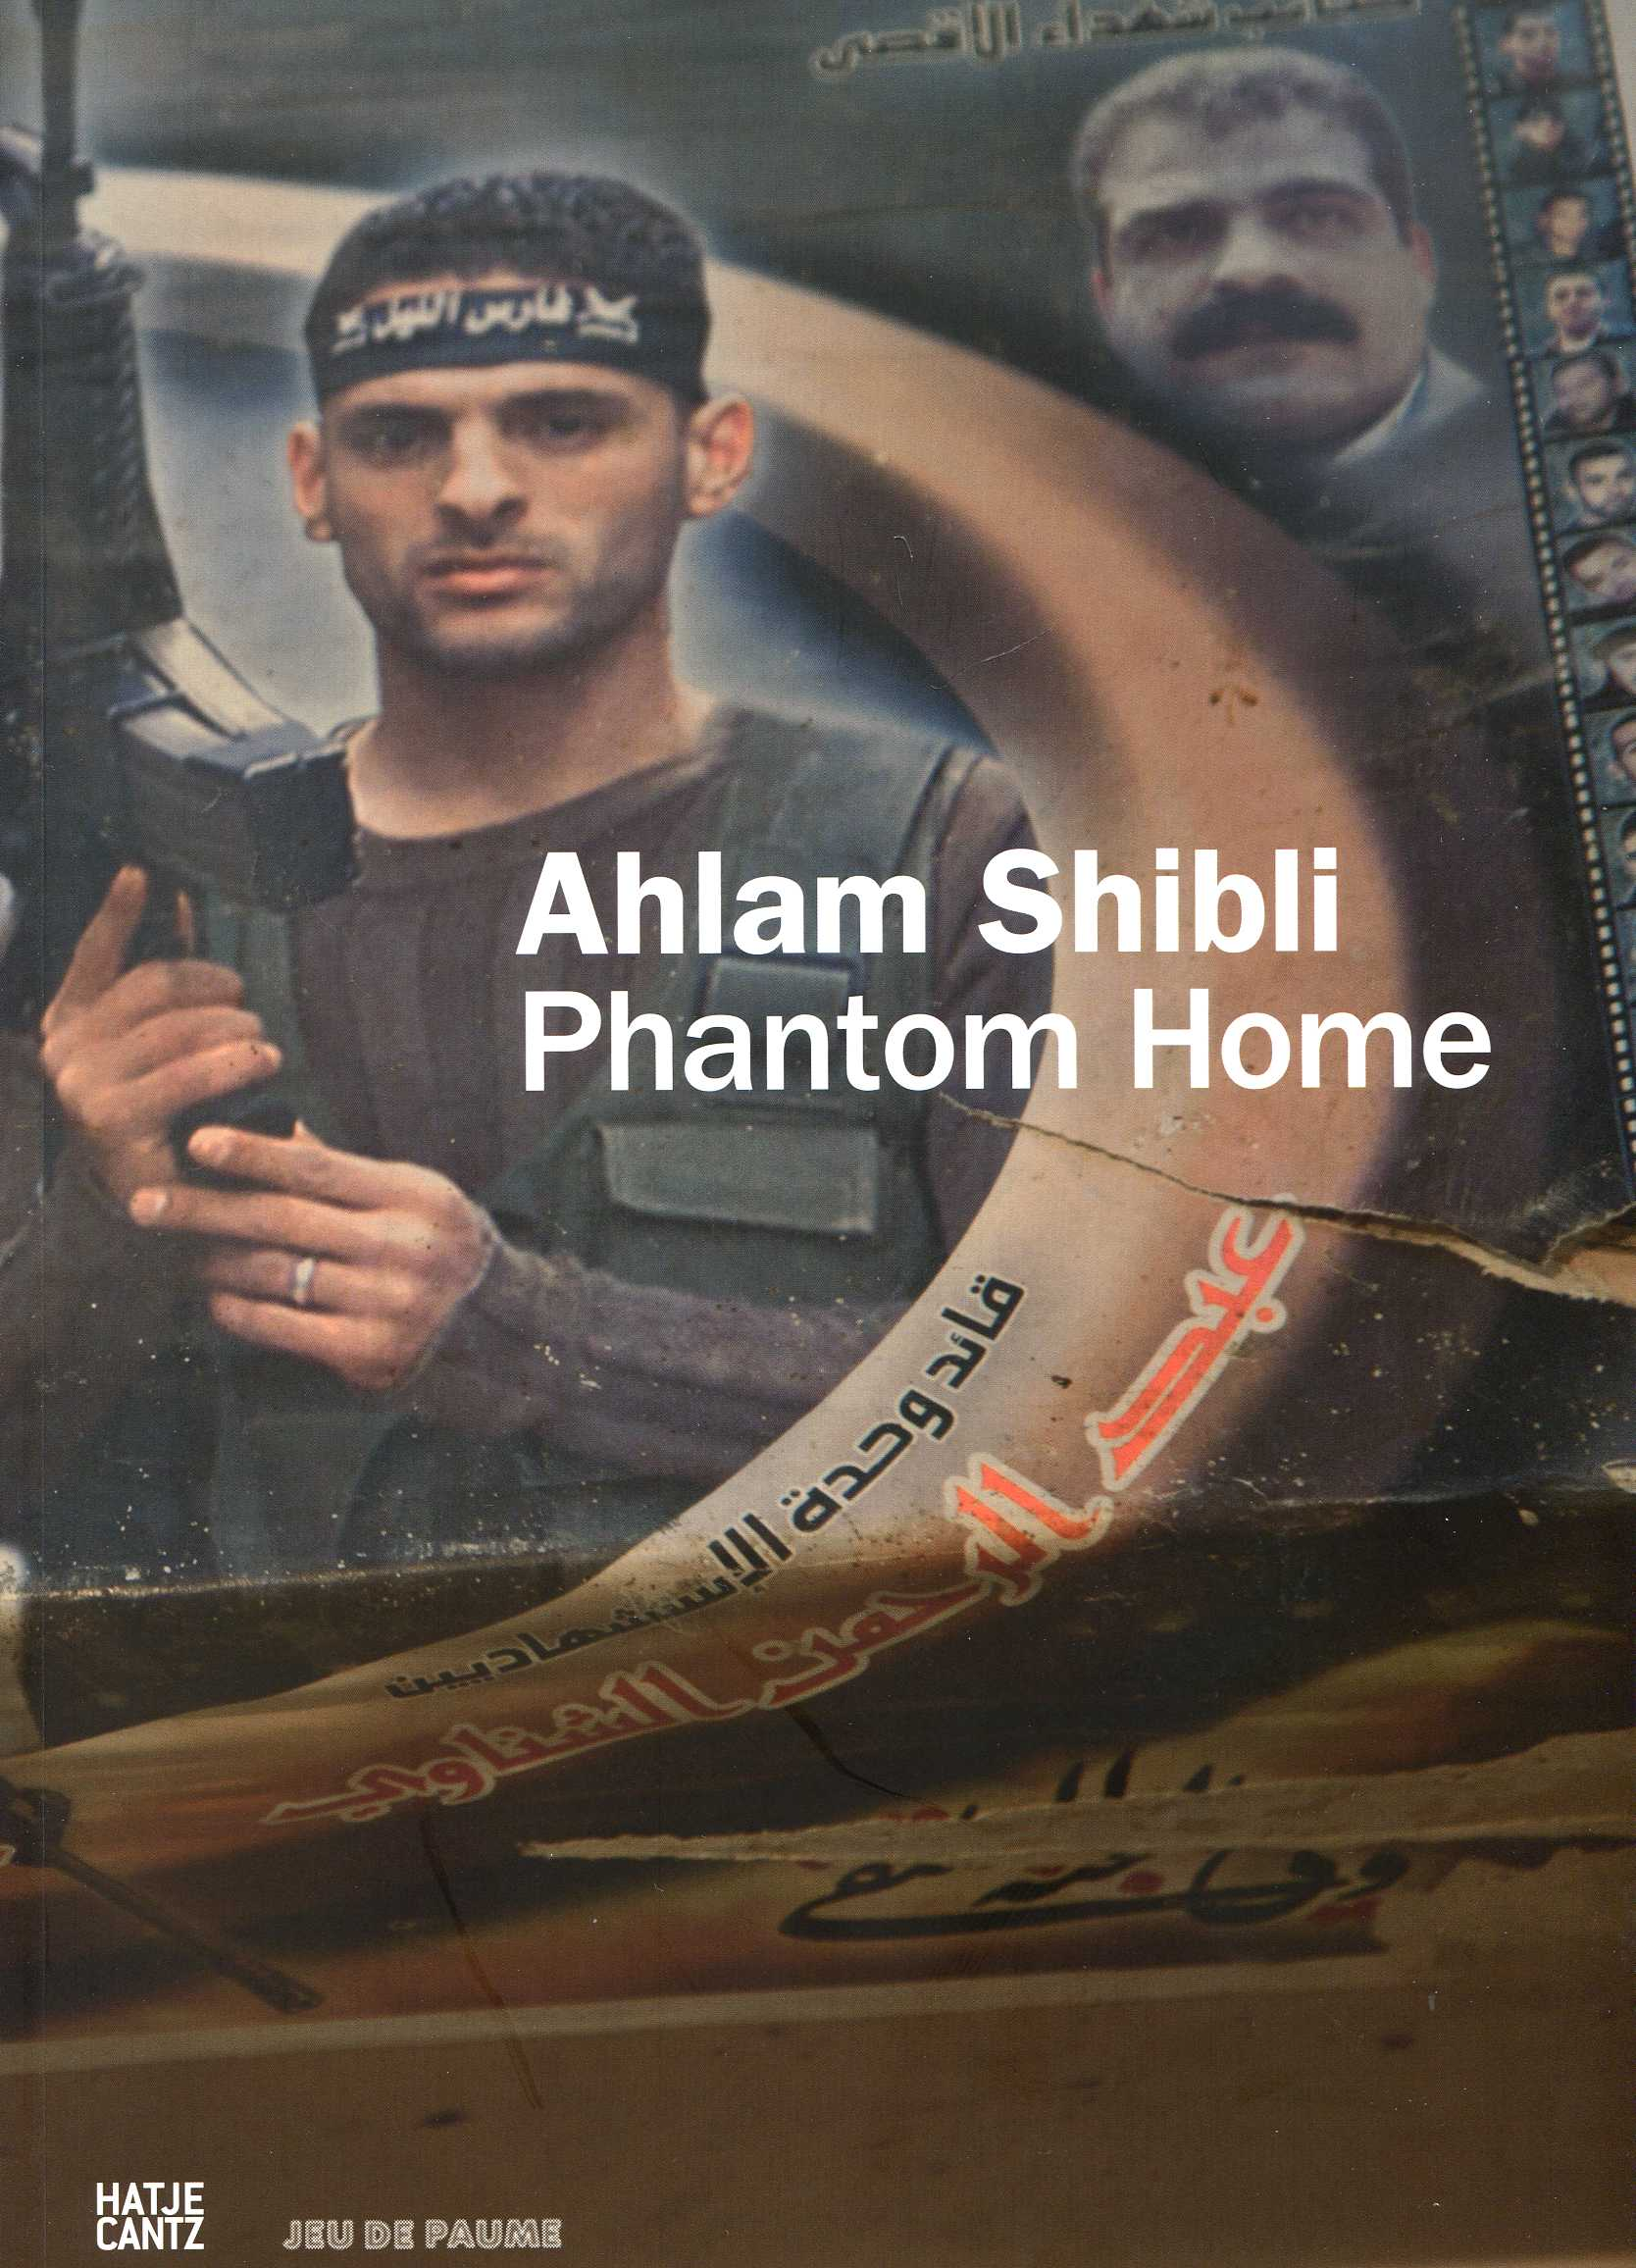 AHLAM SHIBLI PHANTOM HOME (VERSION FRANCAISE ET ANGLAISE CATALOGUE EXPOSITION)